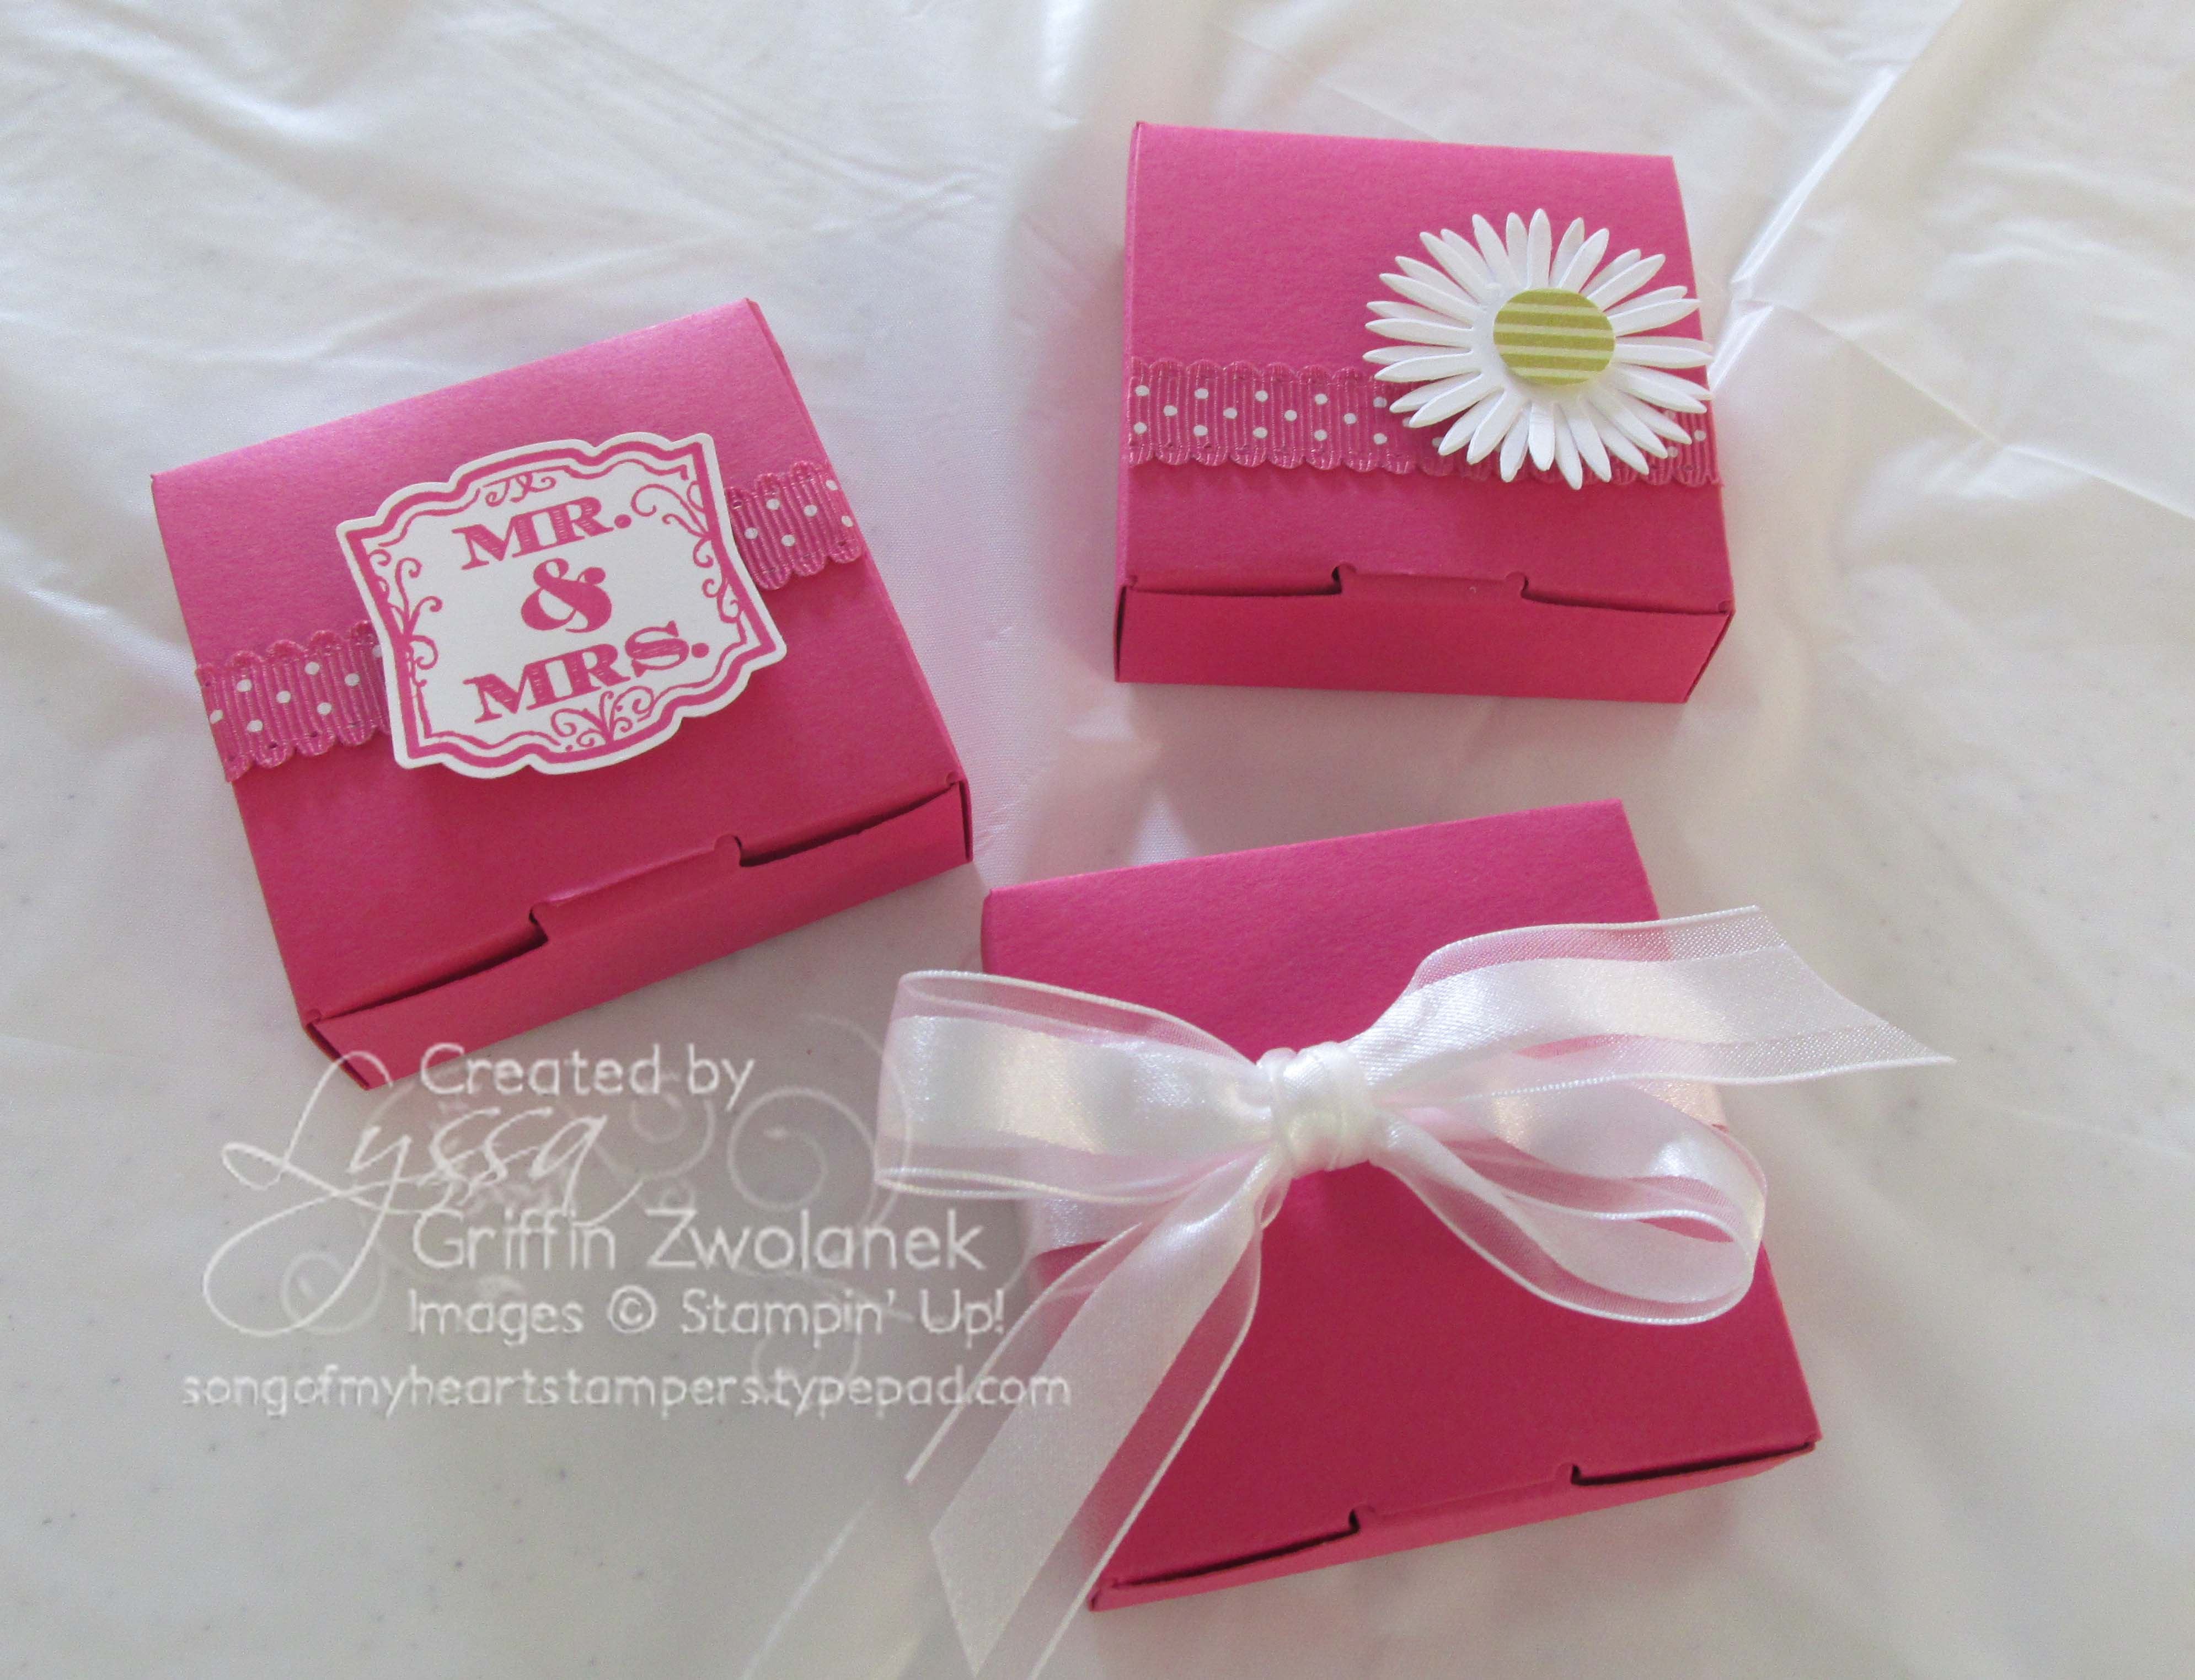 Song of My Heart Stampers: Weddings by Song of My Heart